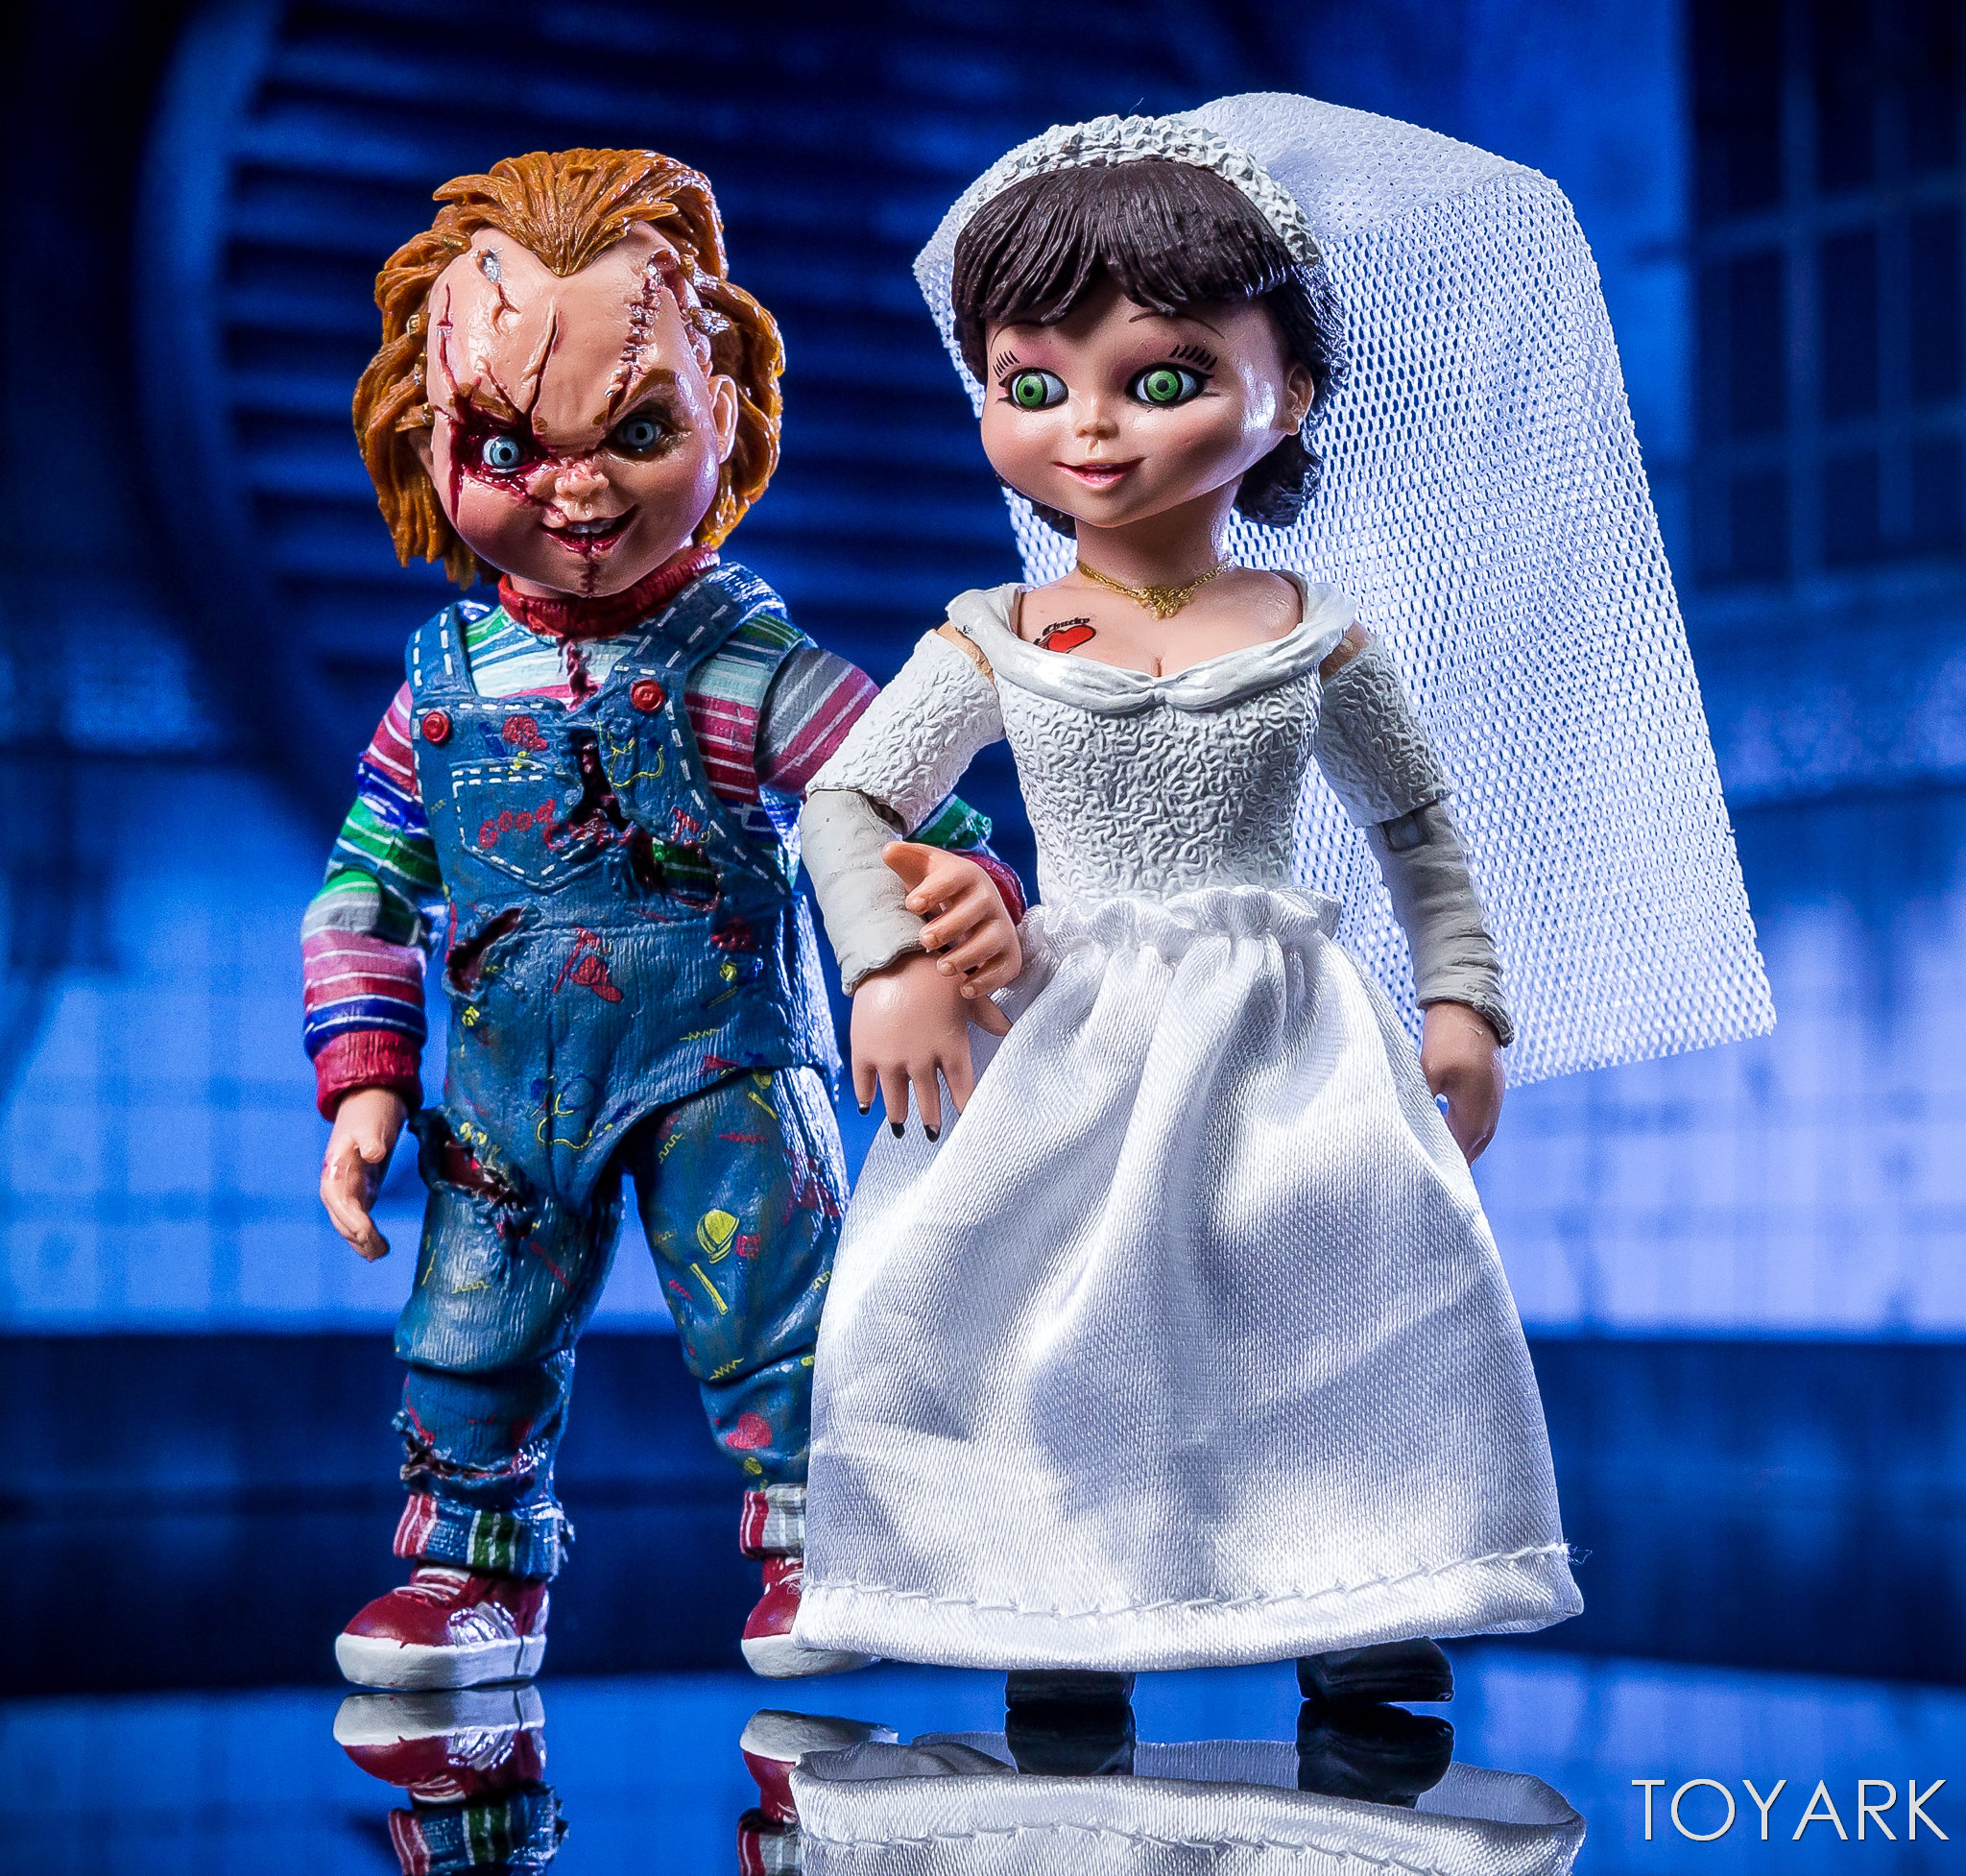 https://news.toyark.com/wp-content/uploads/sites/4/2019/01/Bride-of-Chucky-NECA-Set-026.jpg